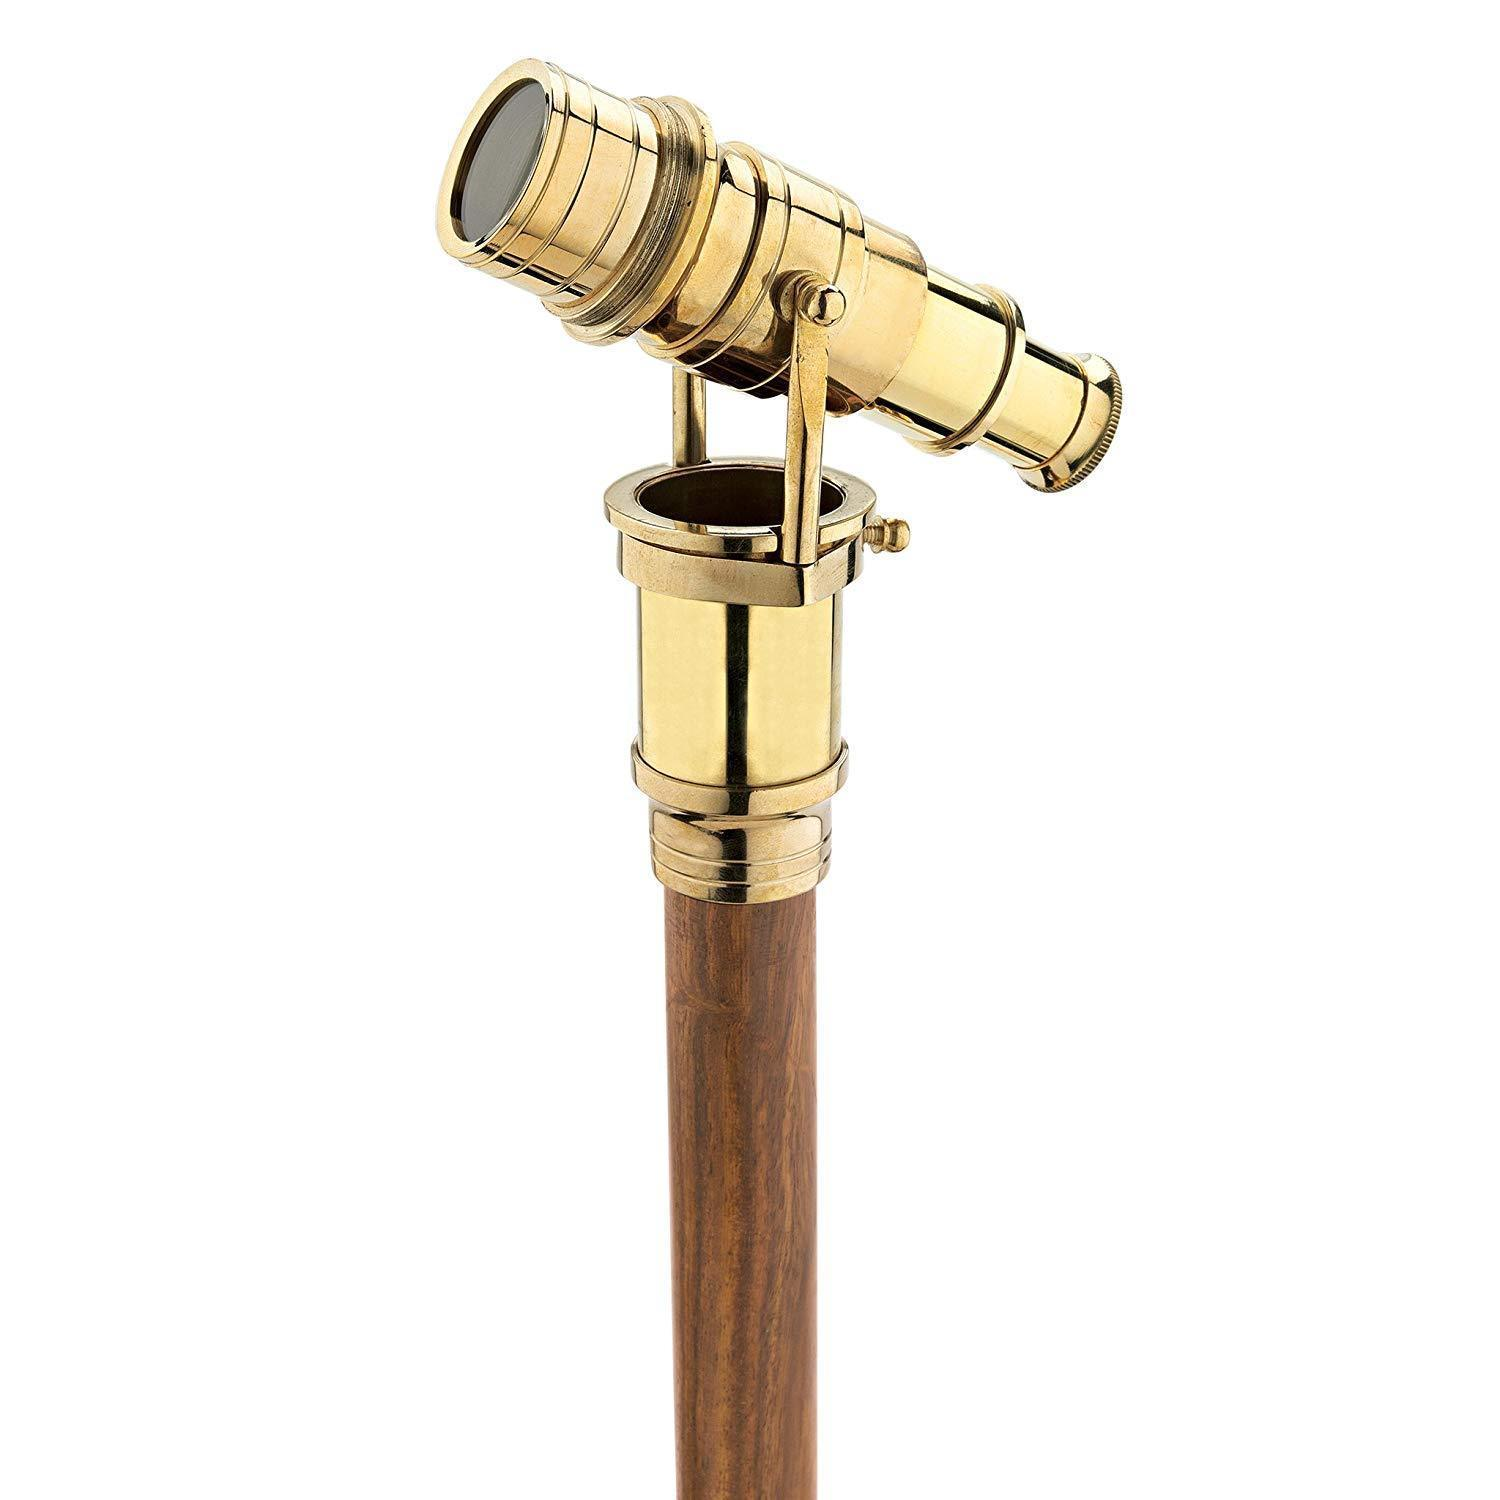 Walking Stick Cane with Brass Hidden Telescope Handle